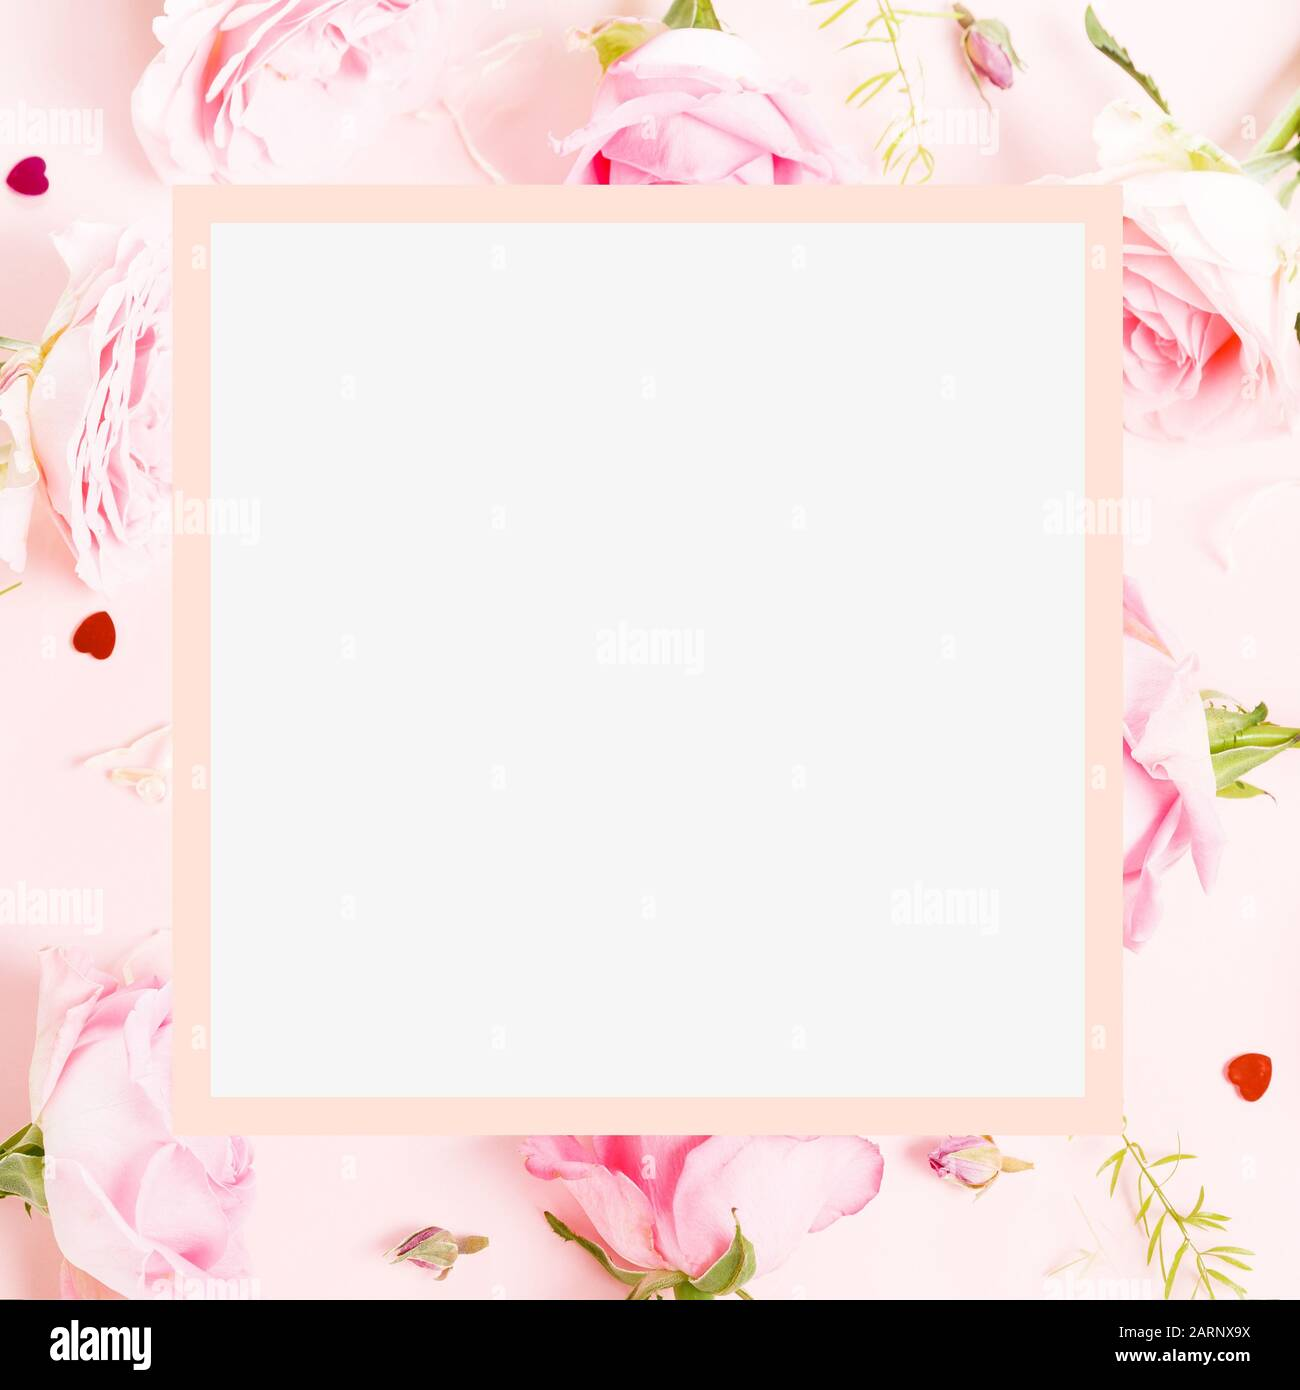 Festive flower English rose composition,frame. Overhead top view, flat lay. Copy space. Birthday, Mother's, Valentines, Women's, Wedding Day concept. Stock Photo